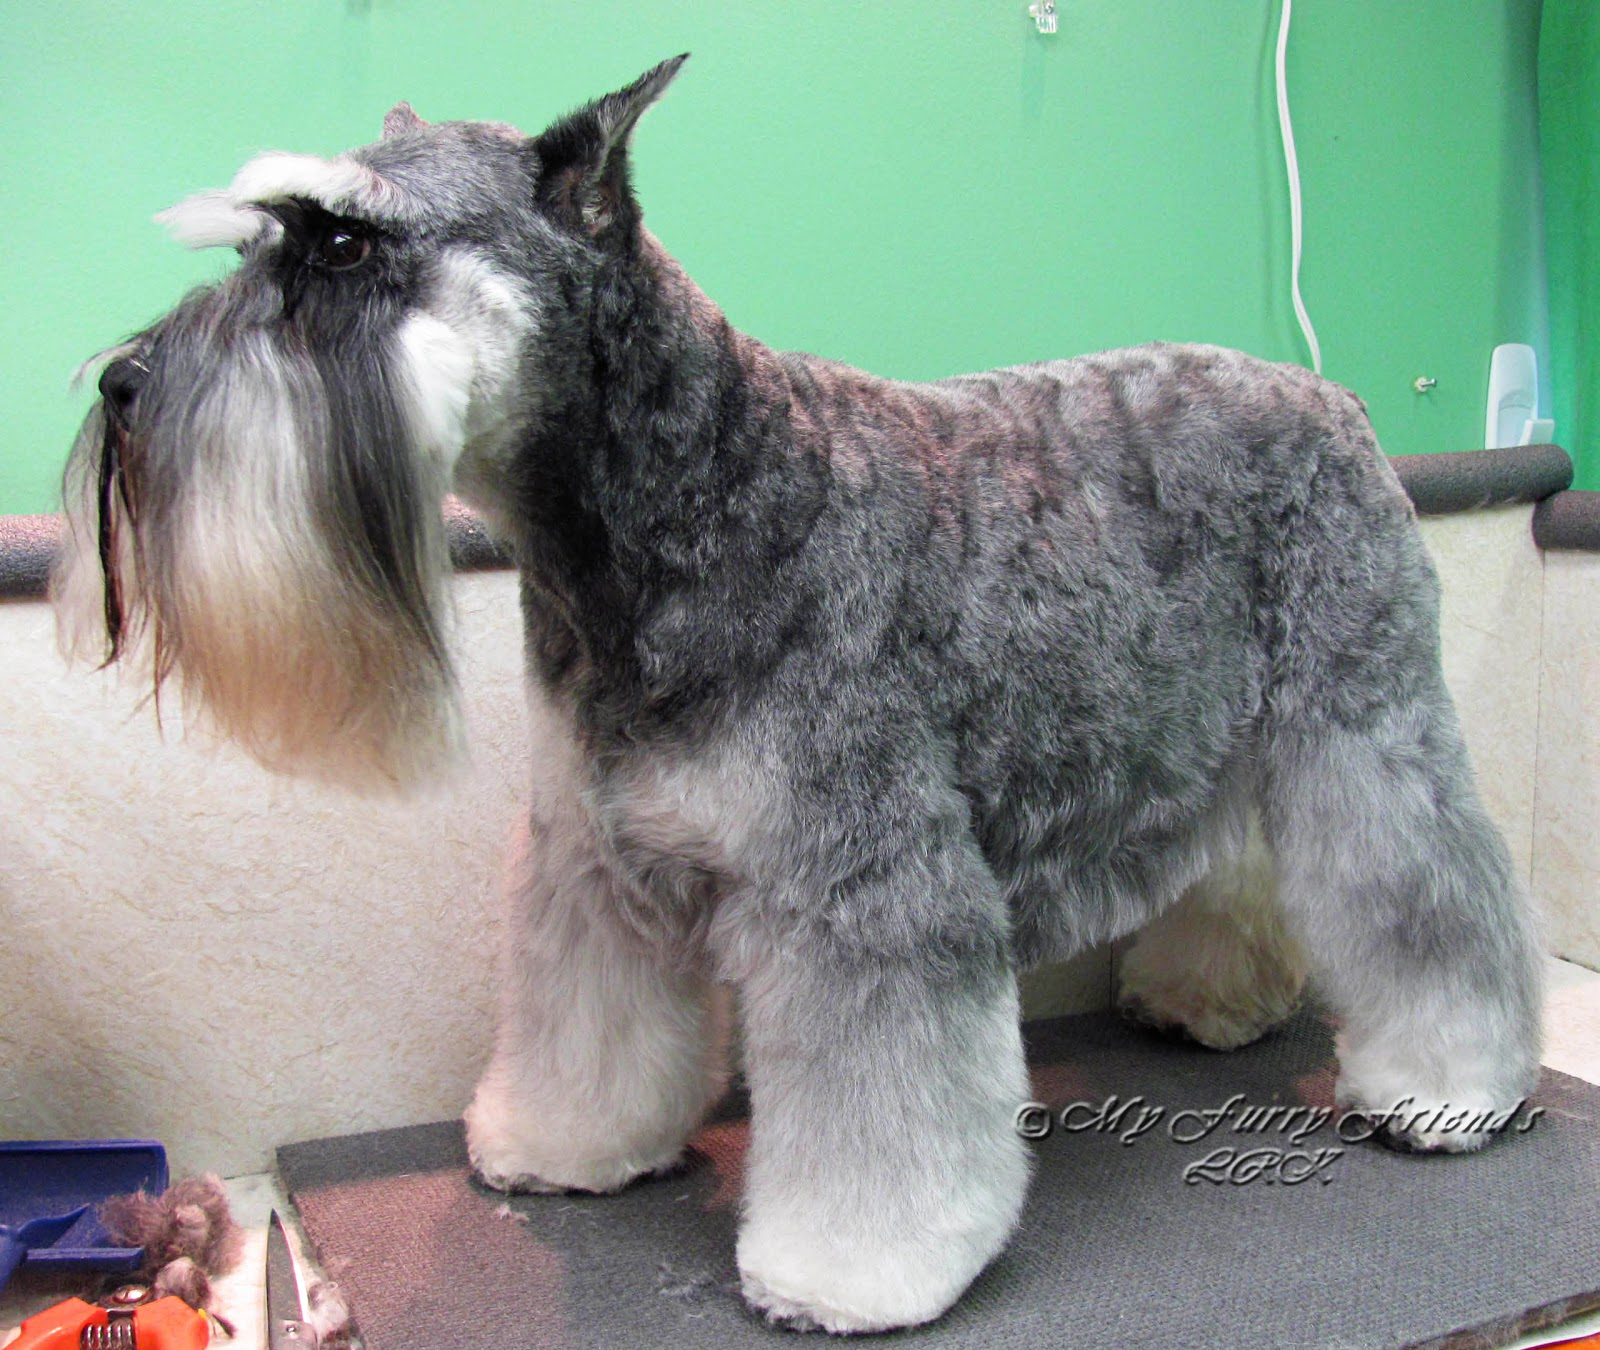 ... : The Good, The Bad, & The Furry: Different Looks of a Schnauzer